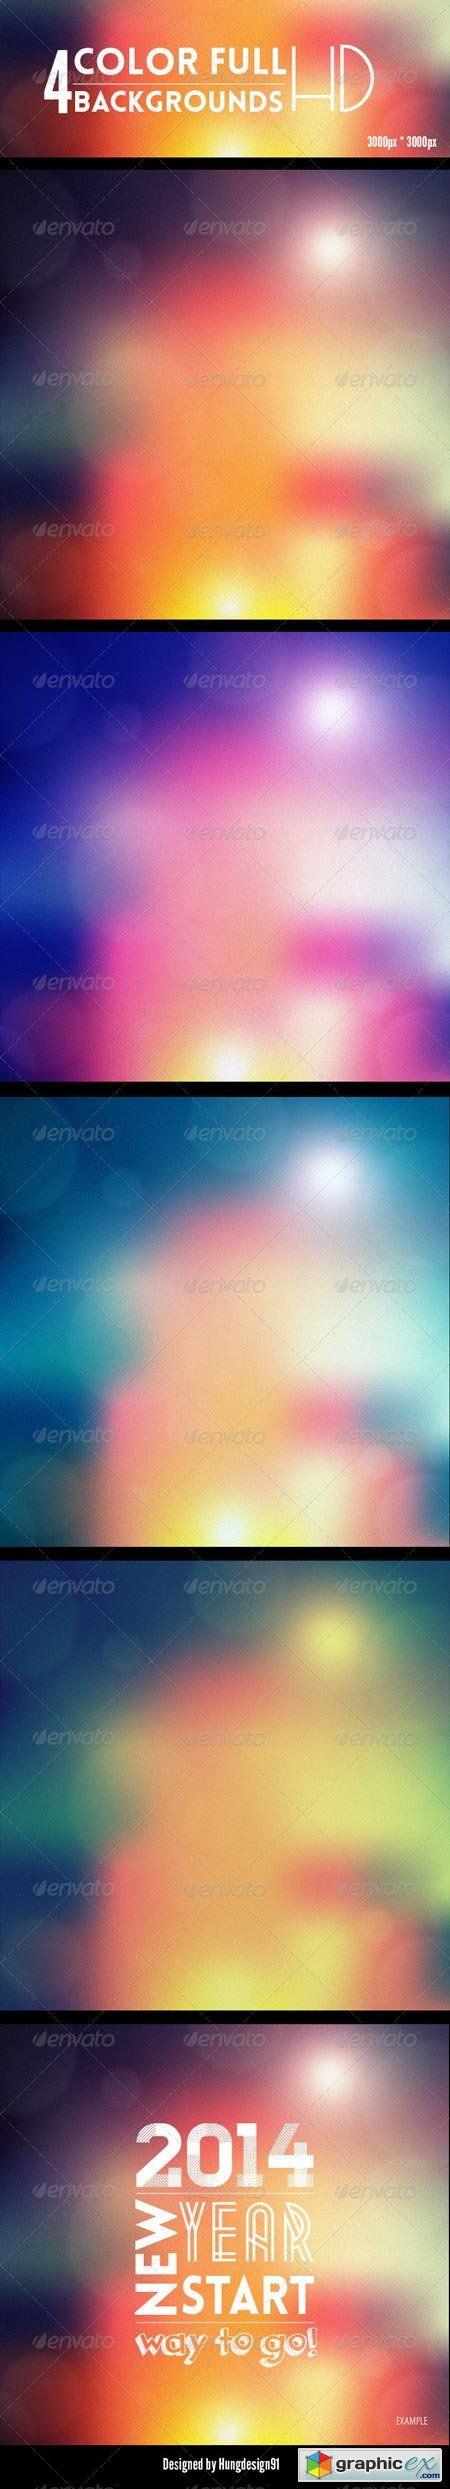 4 Amazing Color Full Backgrounds 6888439